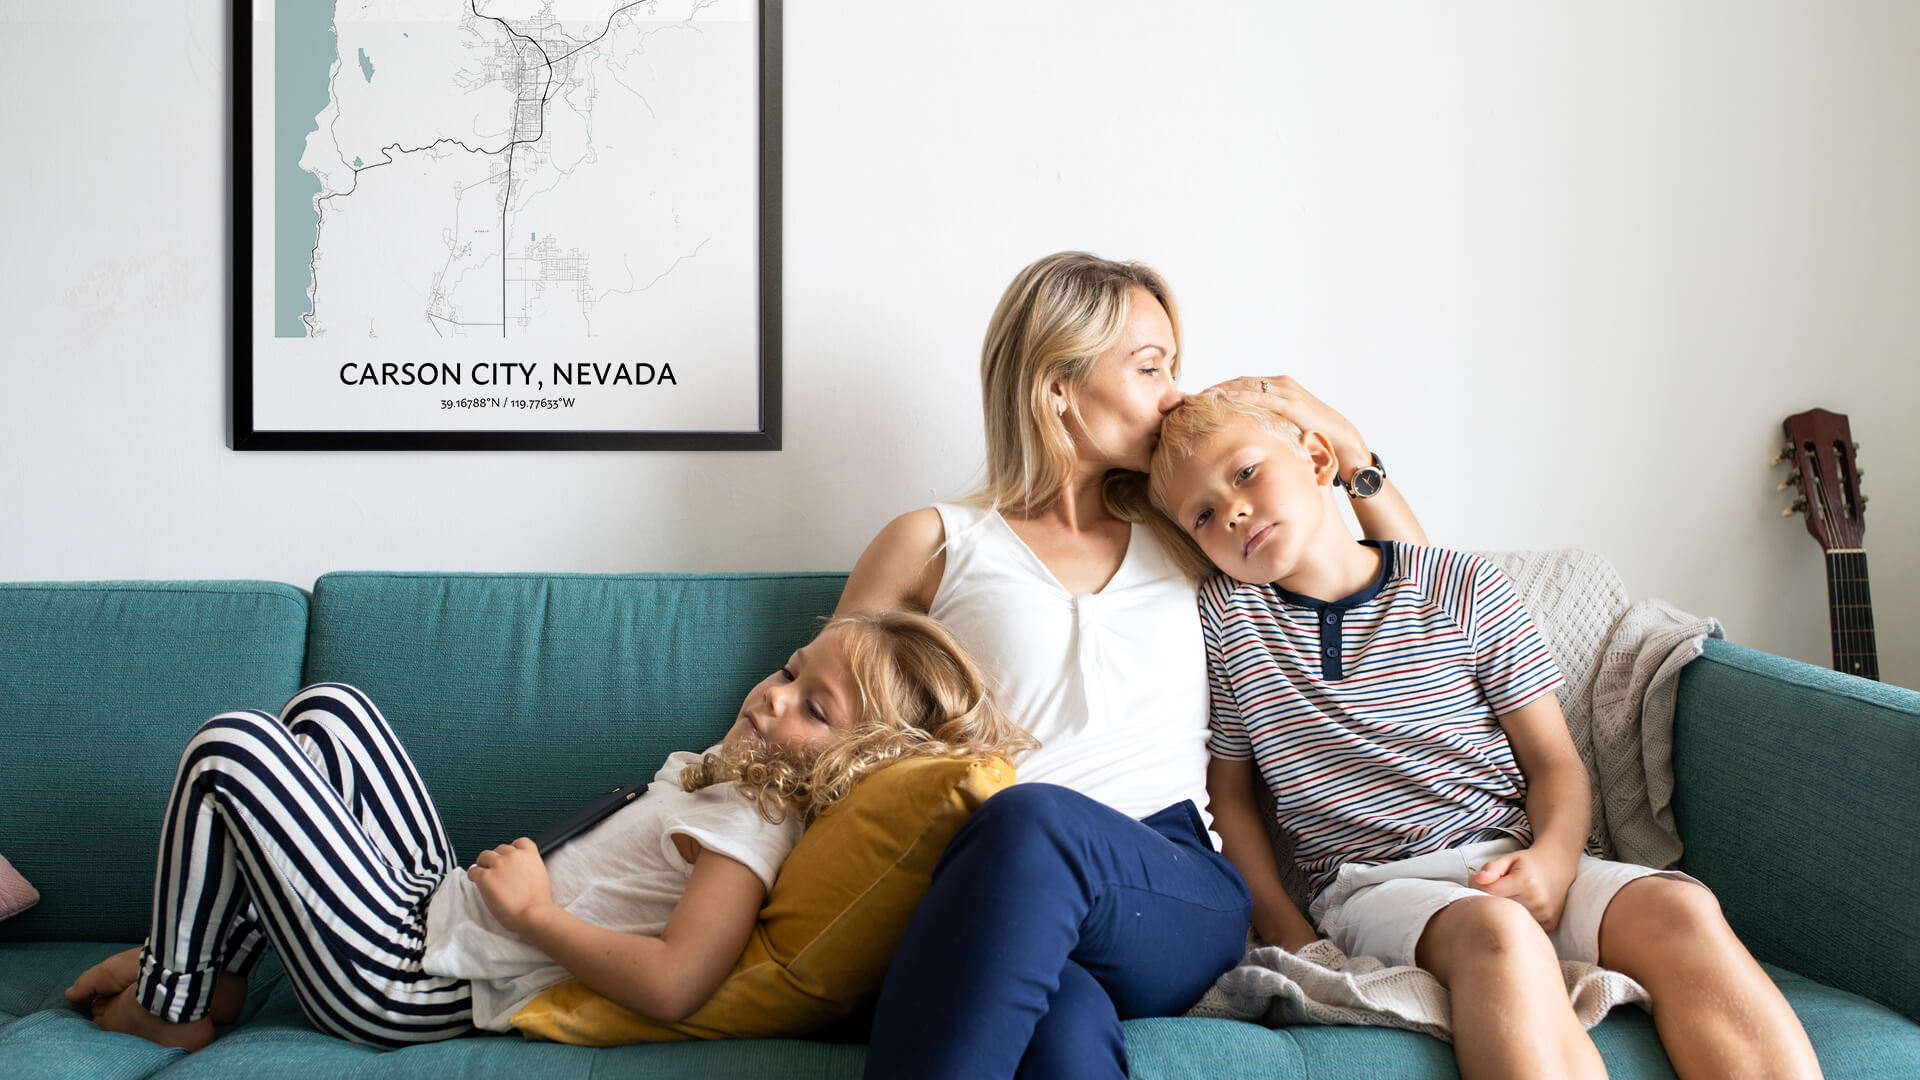 Carson City map poster